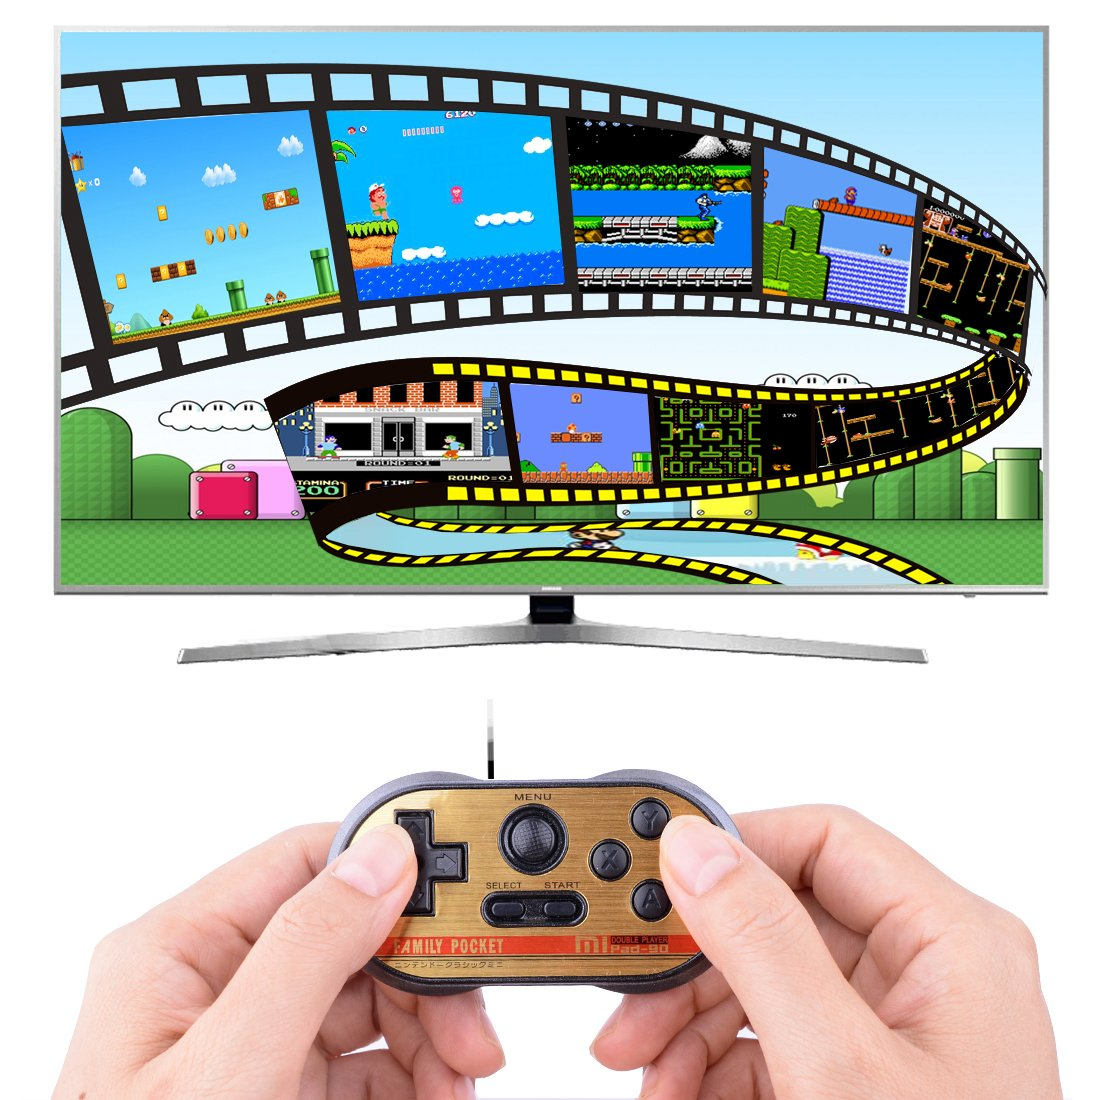 Retro TV Games Controller Classic Handheld Game Console for Kids Gamepad Joystick Load in 260 Video Games Plug and Play Gaming Station (Black)